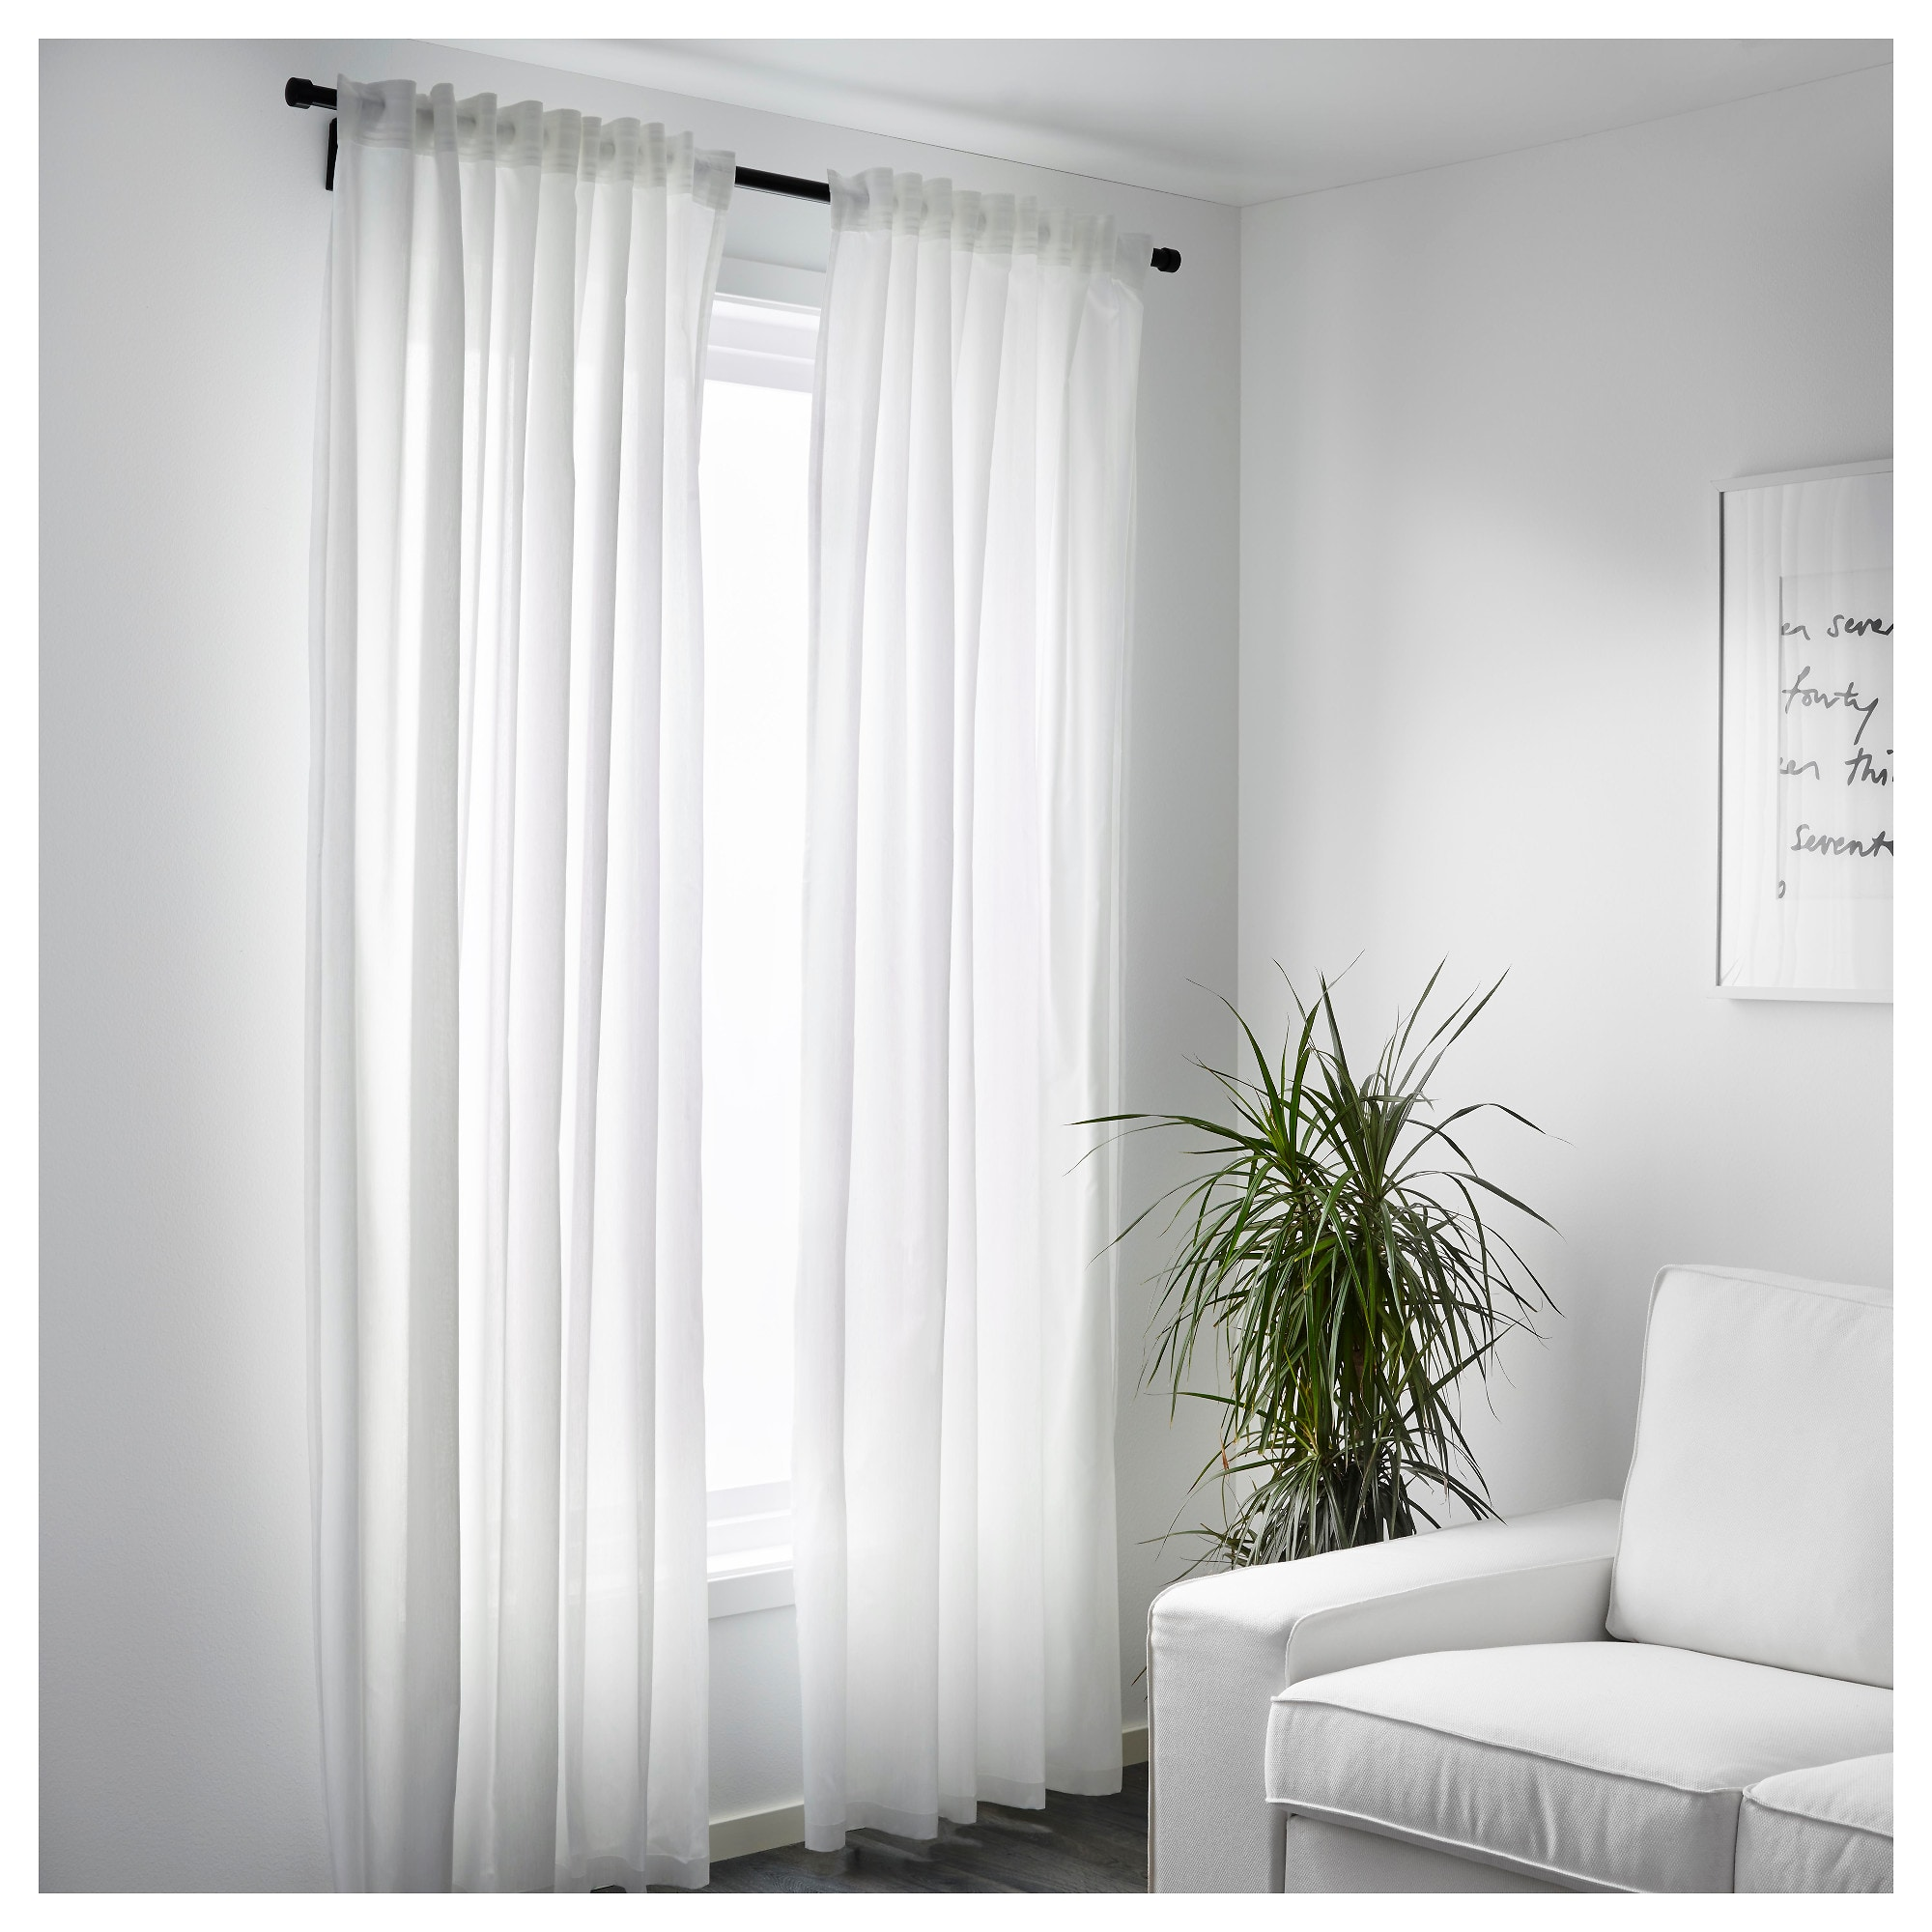 Window Blinds Ikea Details About 1 Pair Ikea White Curtains Vivan Bedroom Living Room Window Blinds 250x145cm